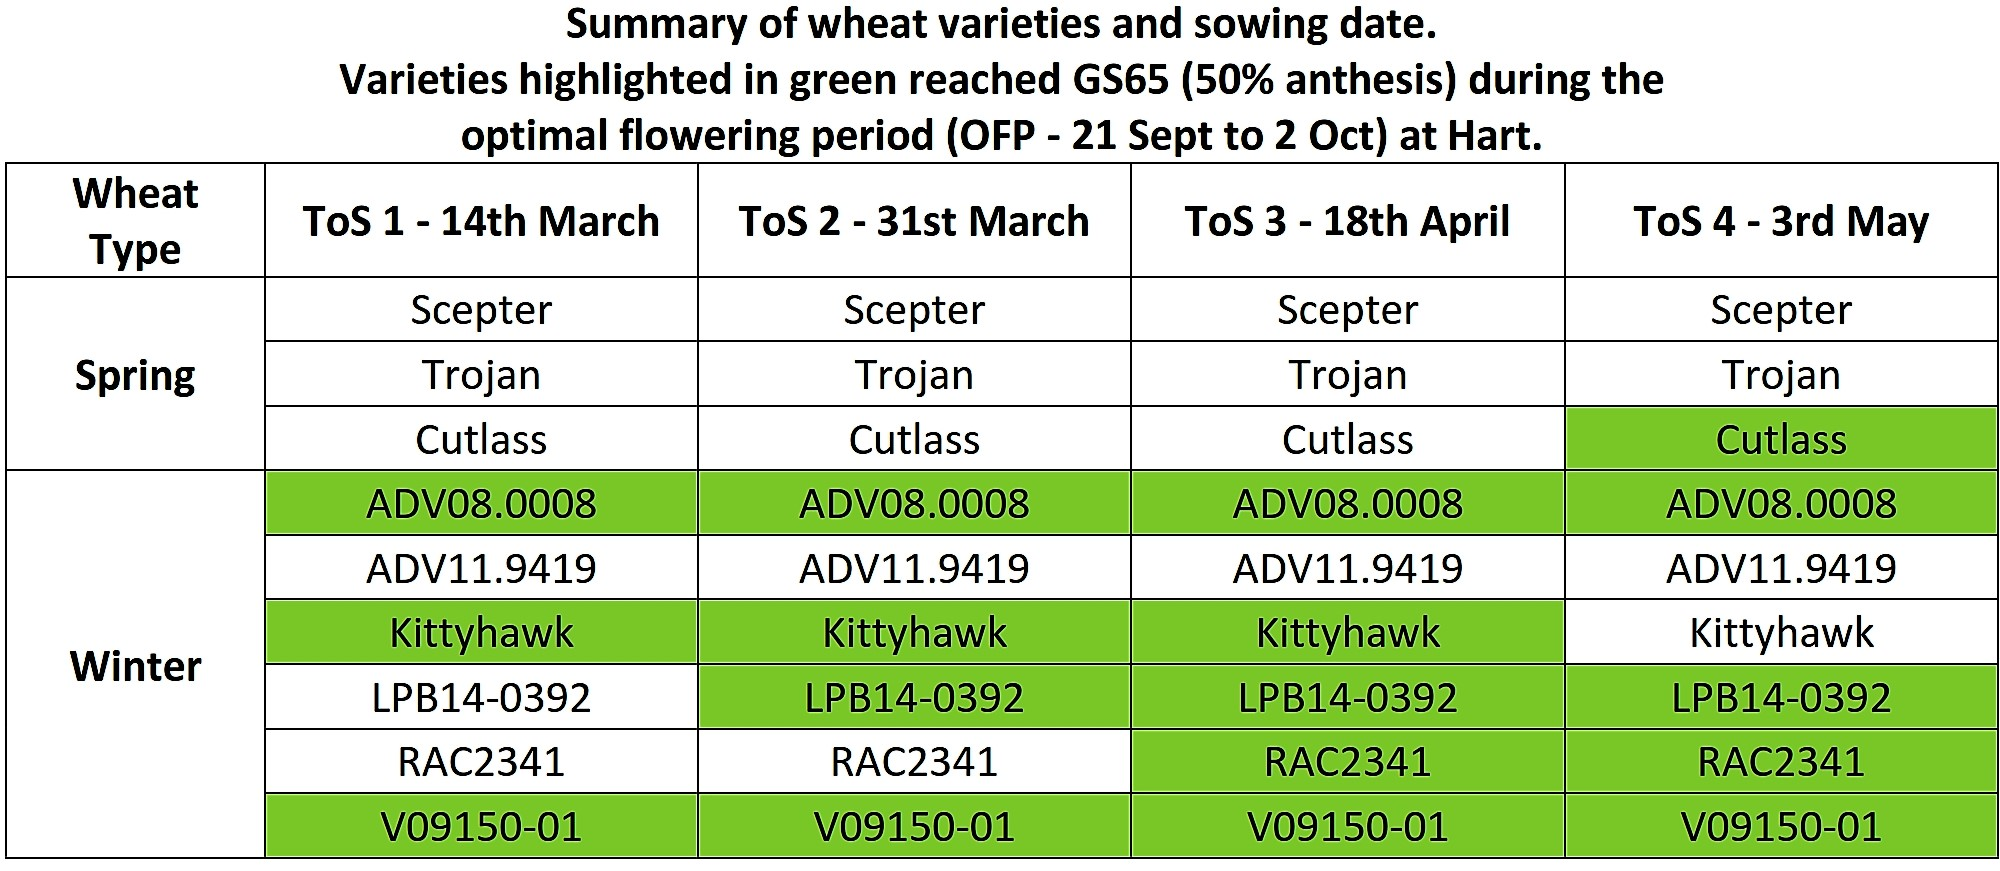 Summary of wheat varieties and sowing date